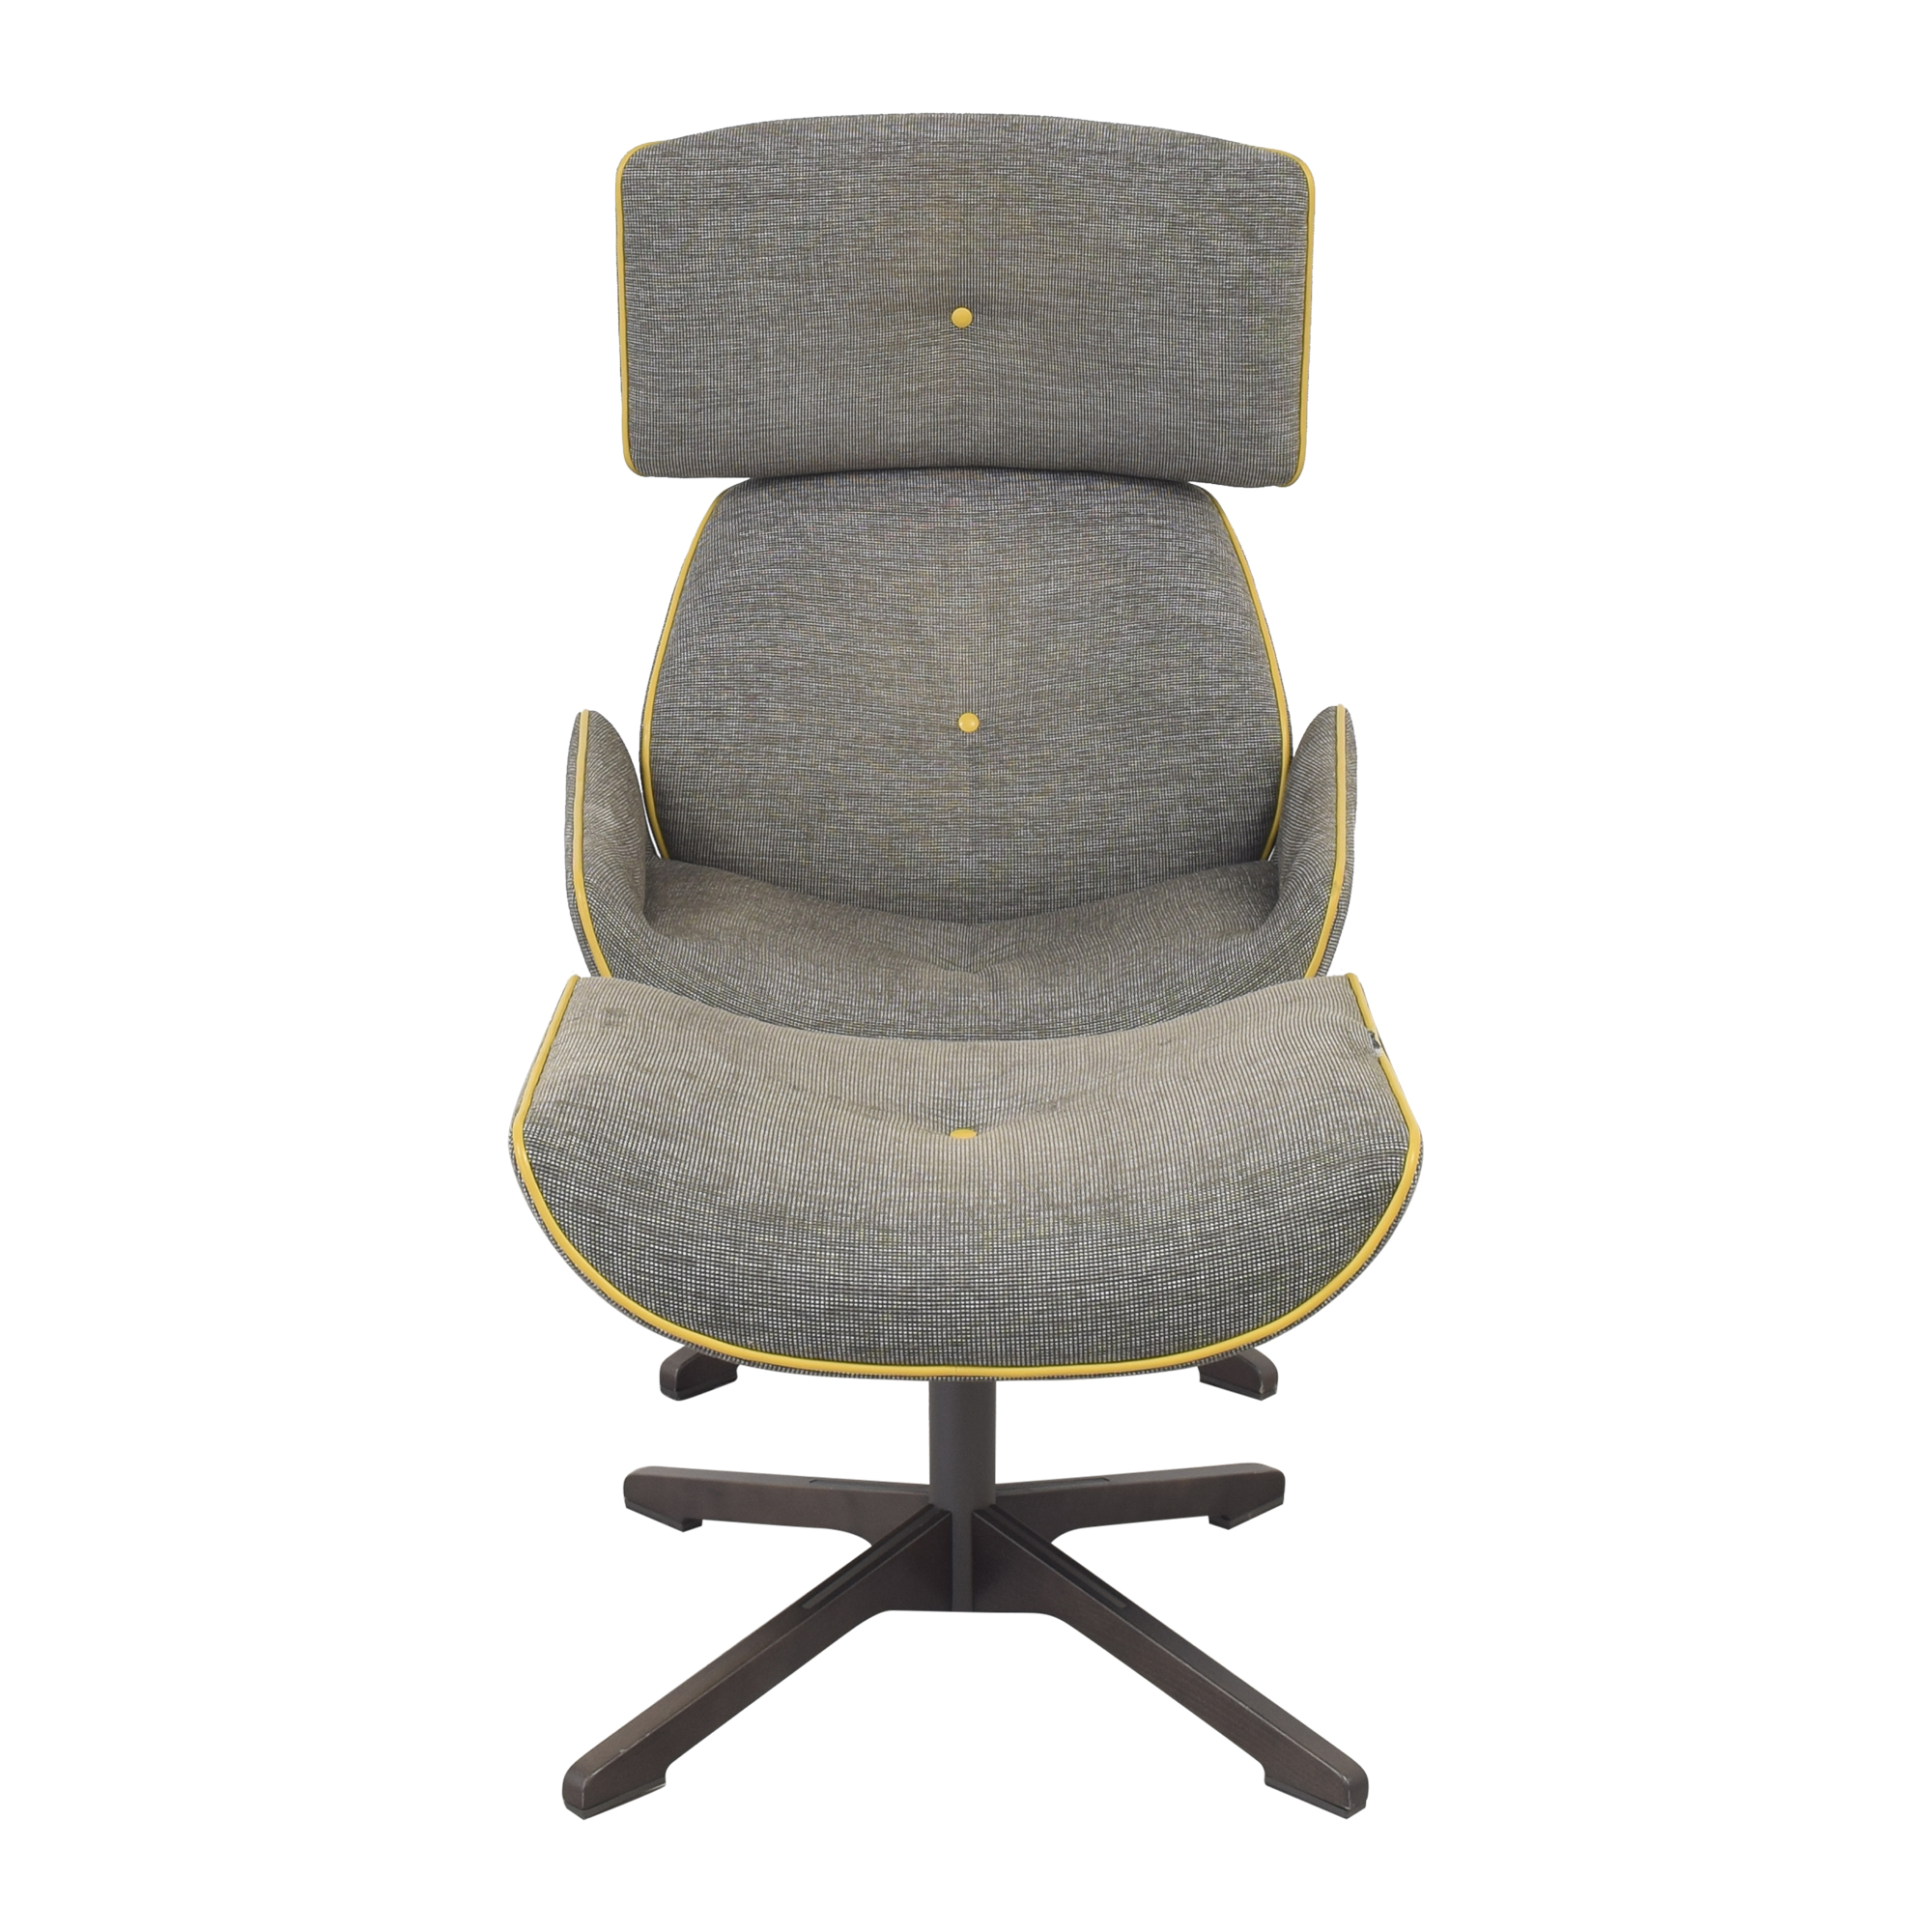 shop Roche Bobois Roche Bobois Quiet Life Armchair and Footstool online